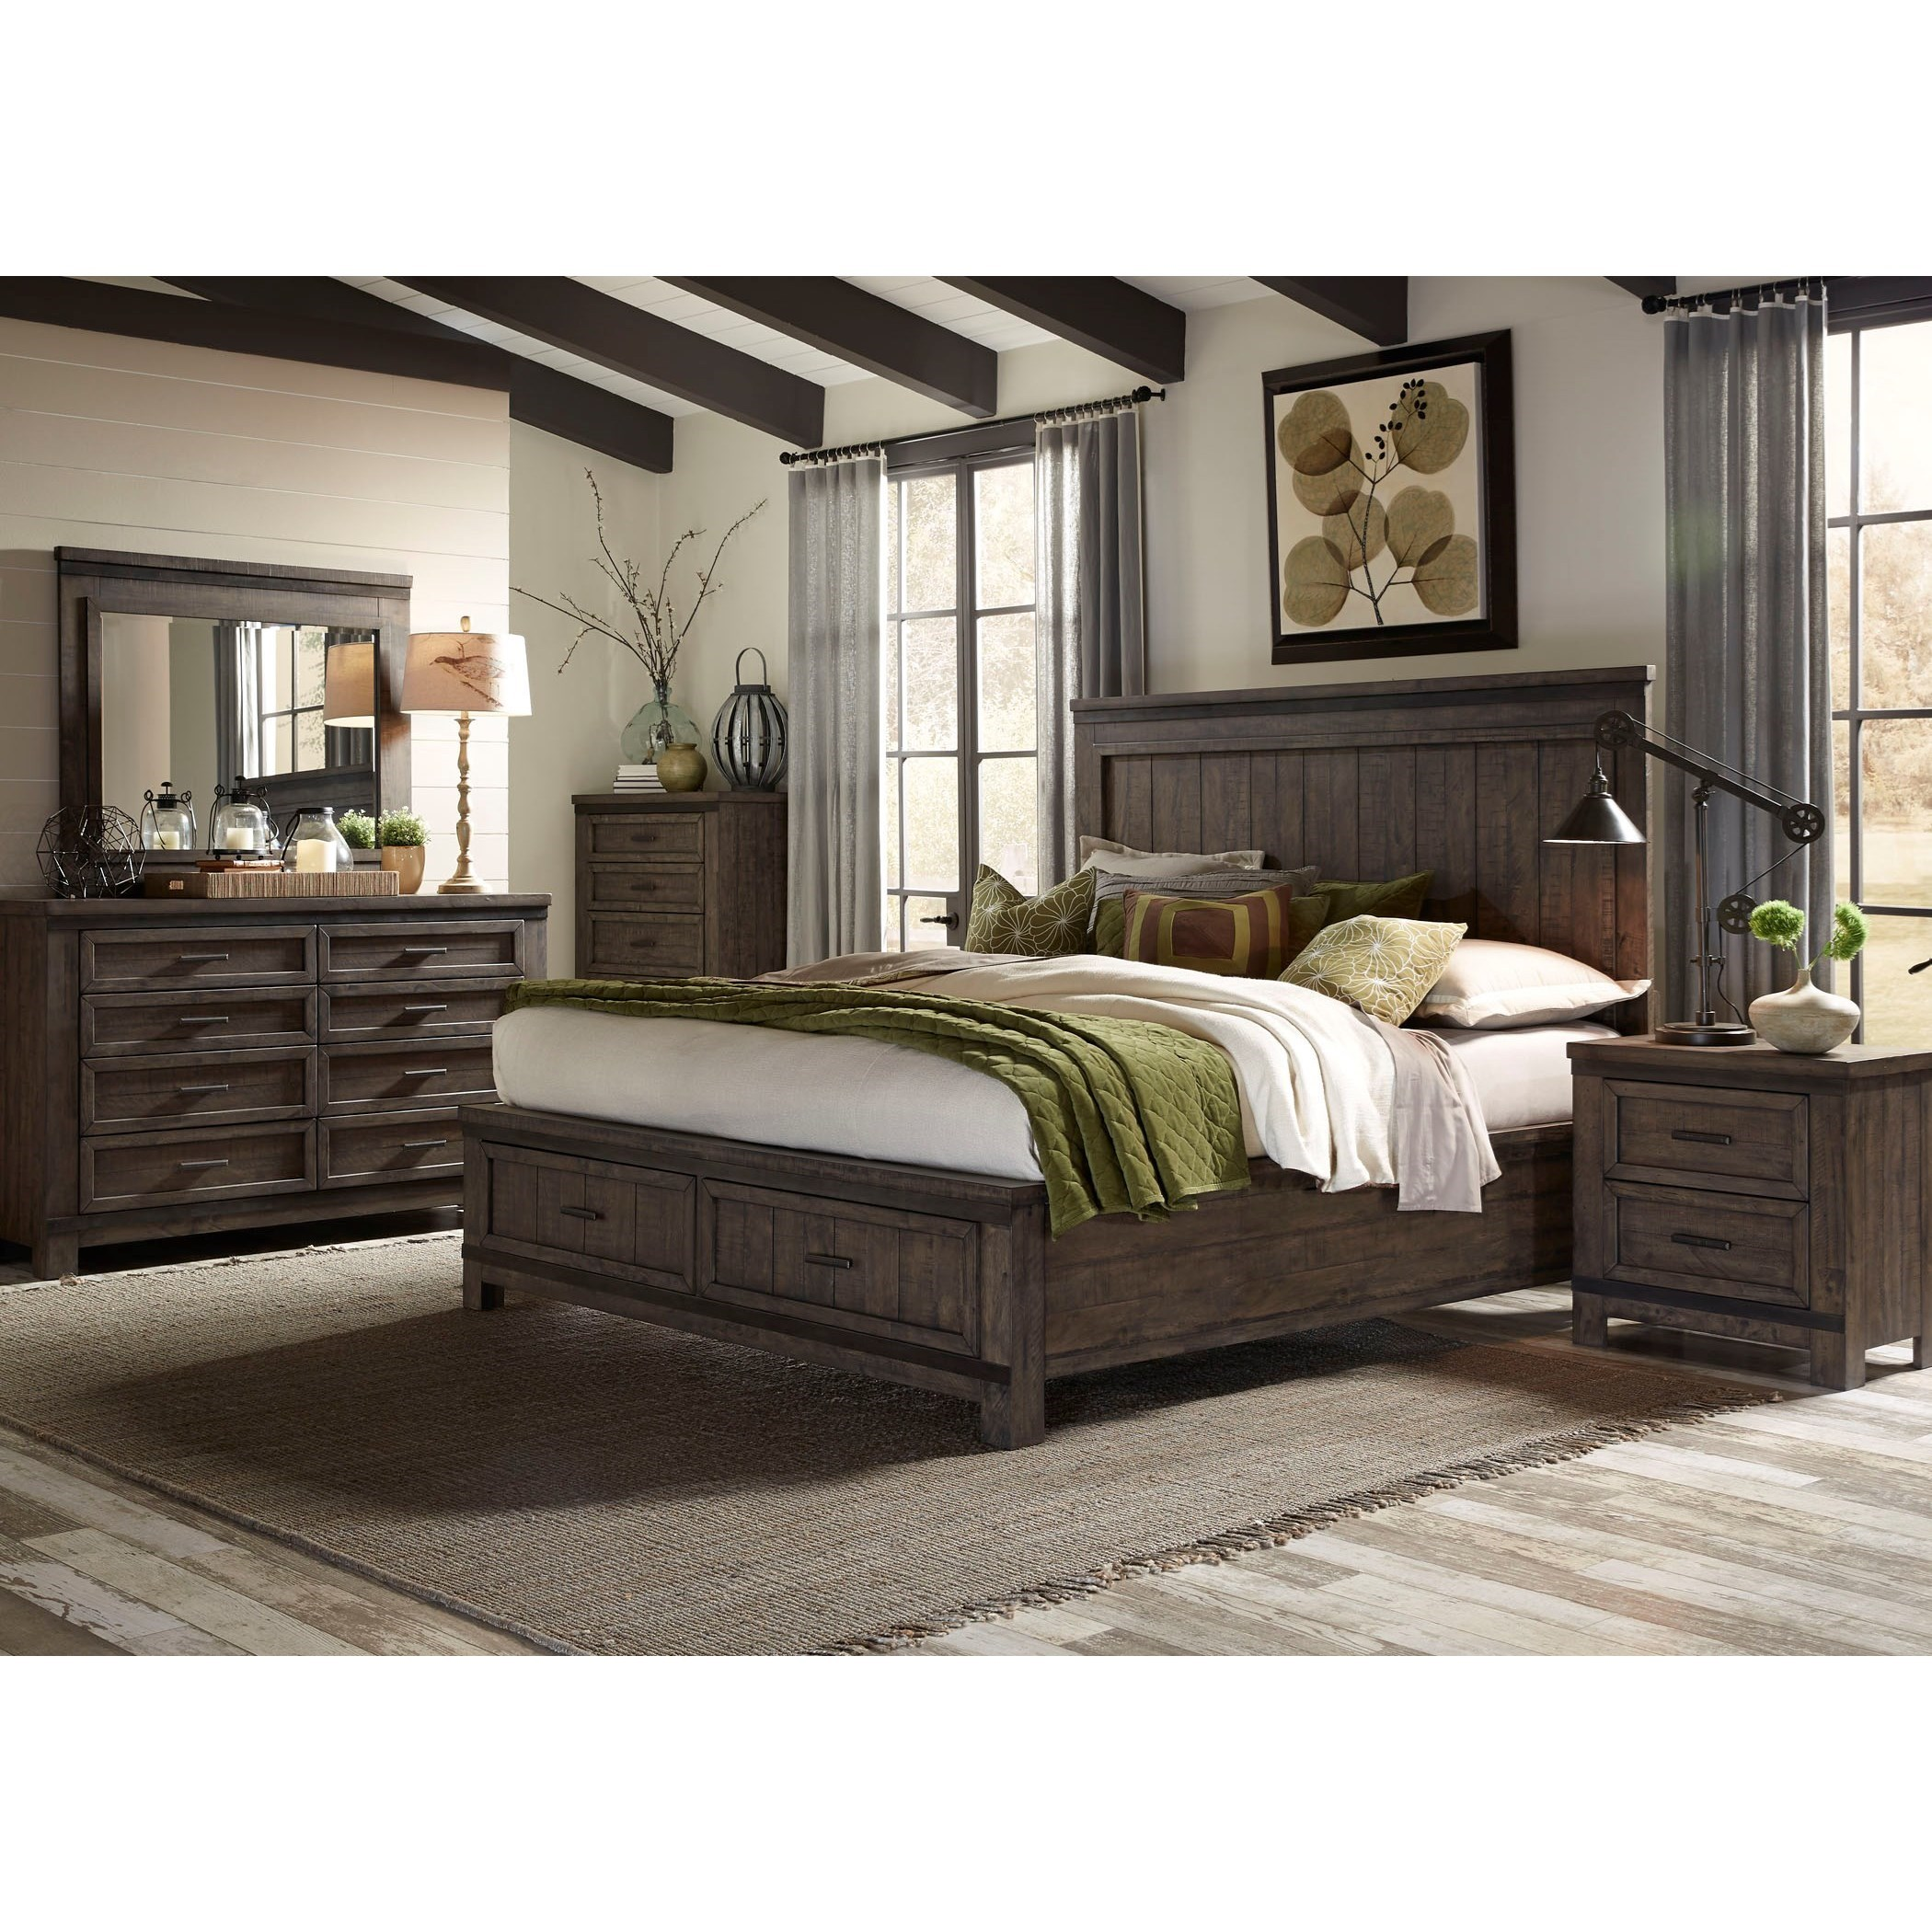 Liberty Furniture Thornwood Hills Queen Bedroom Group - Item Number: 759-BR-QSBDMCN